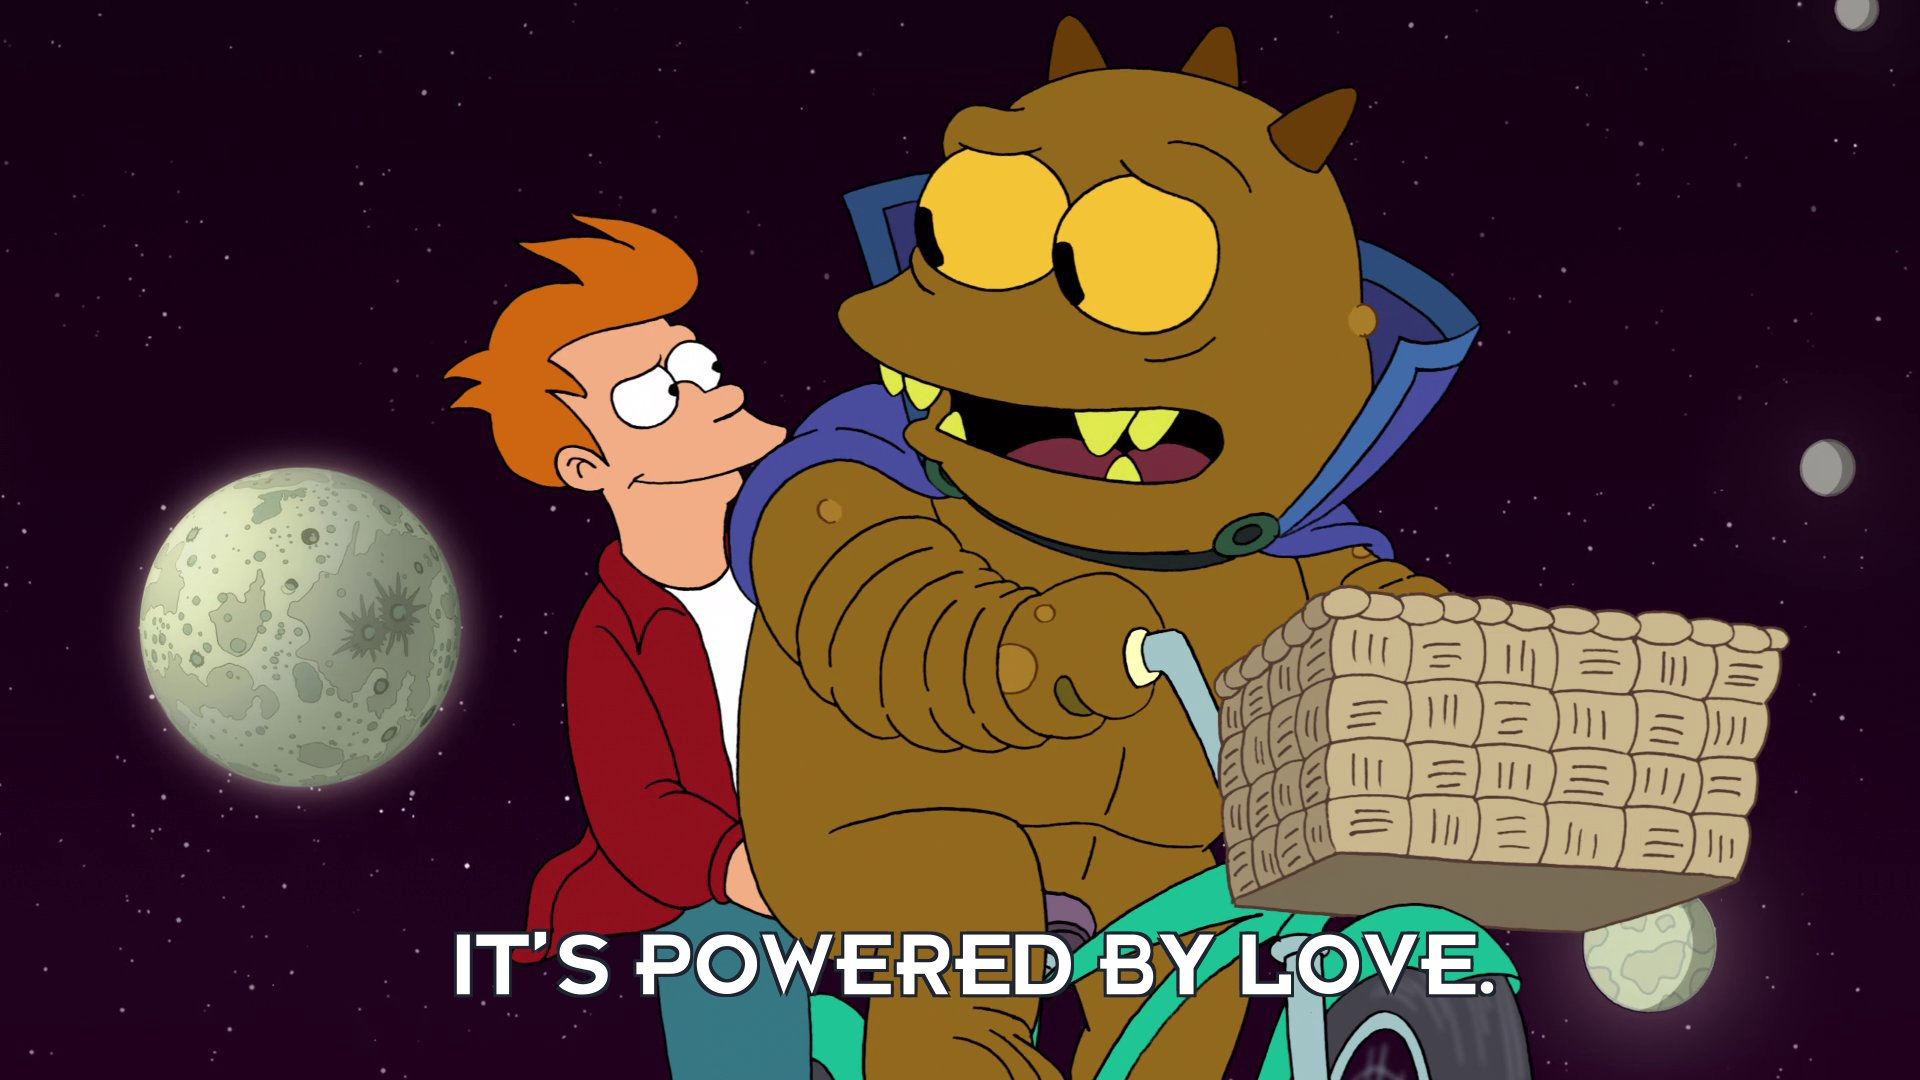 Jrrr: It's powered by love.